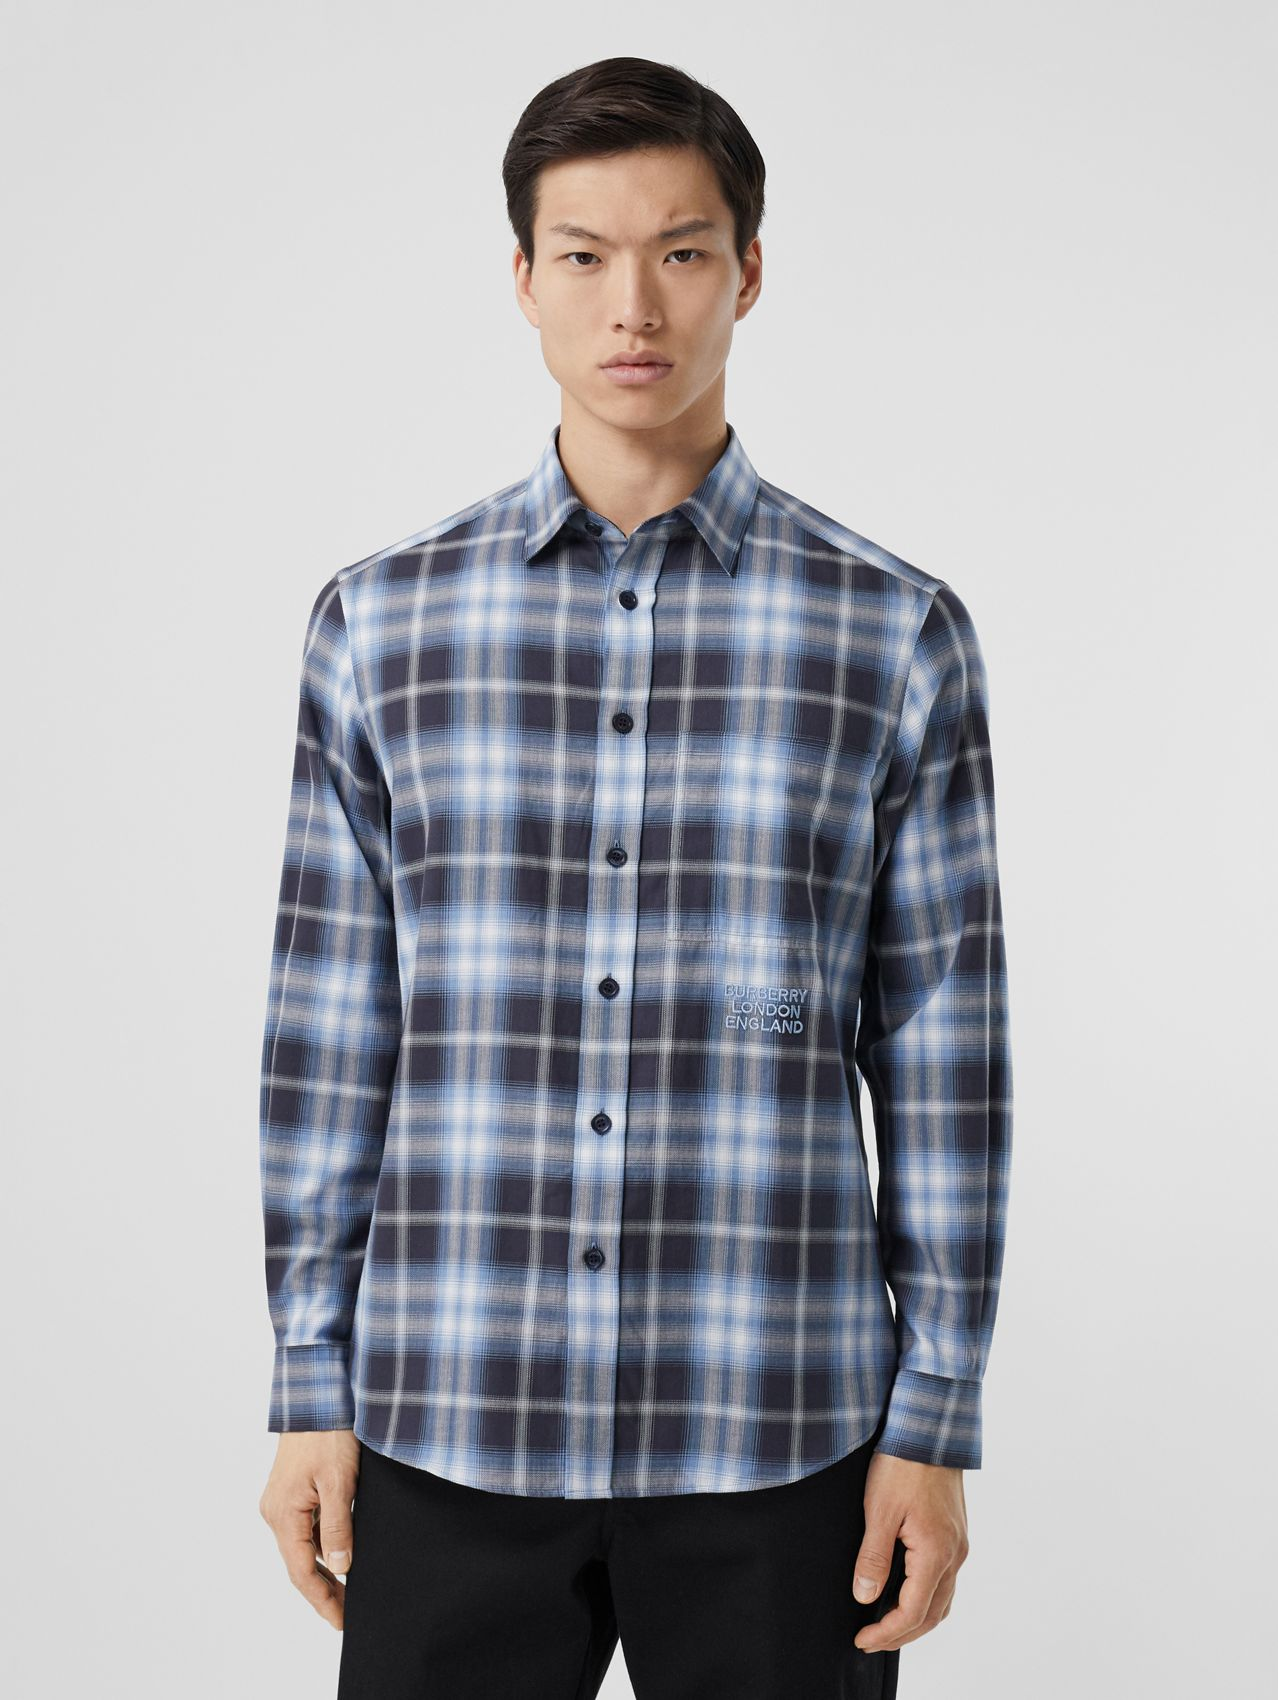 Embroidered Logo Ombré Check Cotton Shirt in Navy